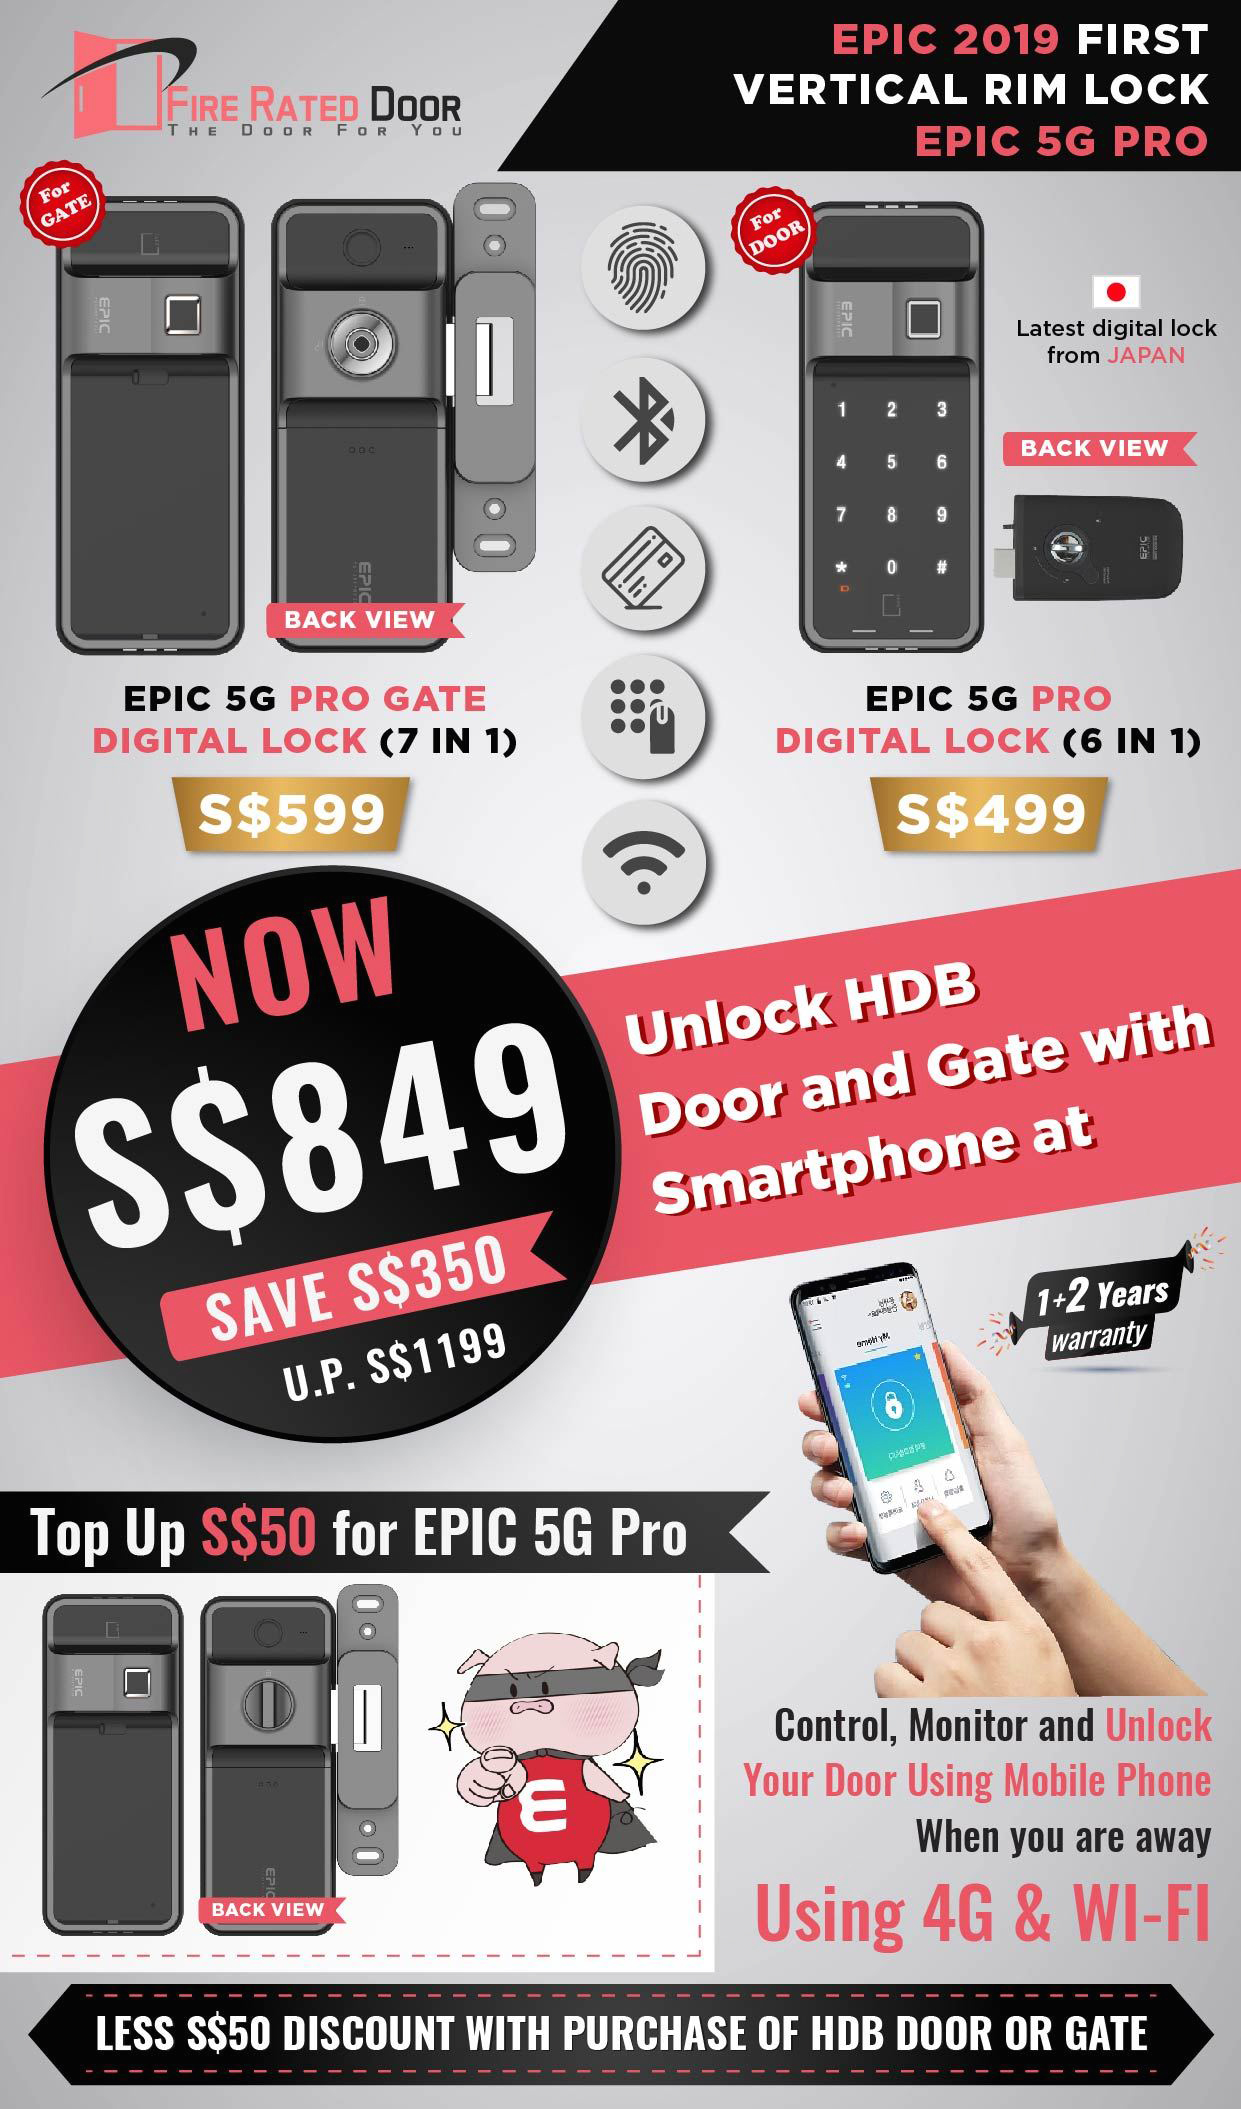 Call 96177025 to buy First Vertical Rim Lock EPIC 5G Pro HDB Gate digital lock sales